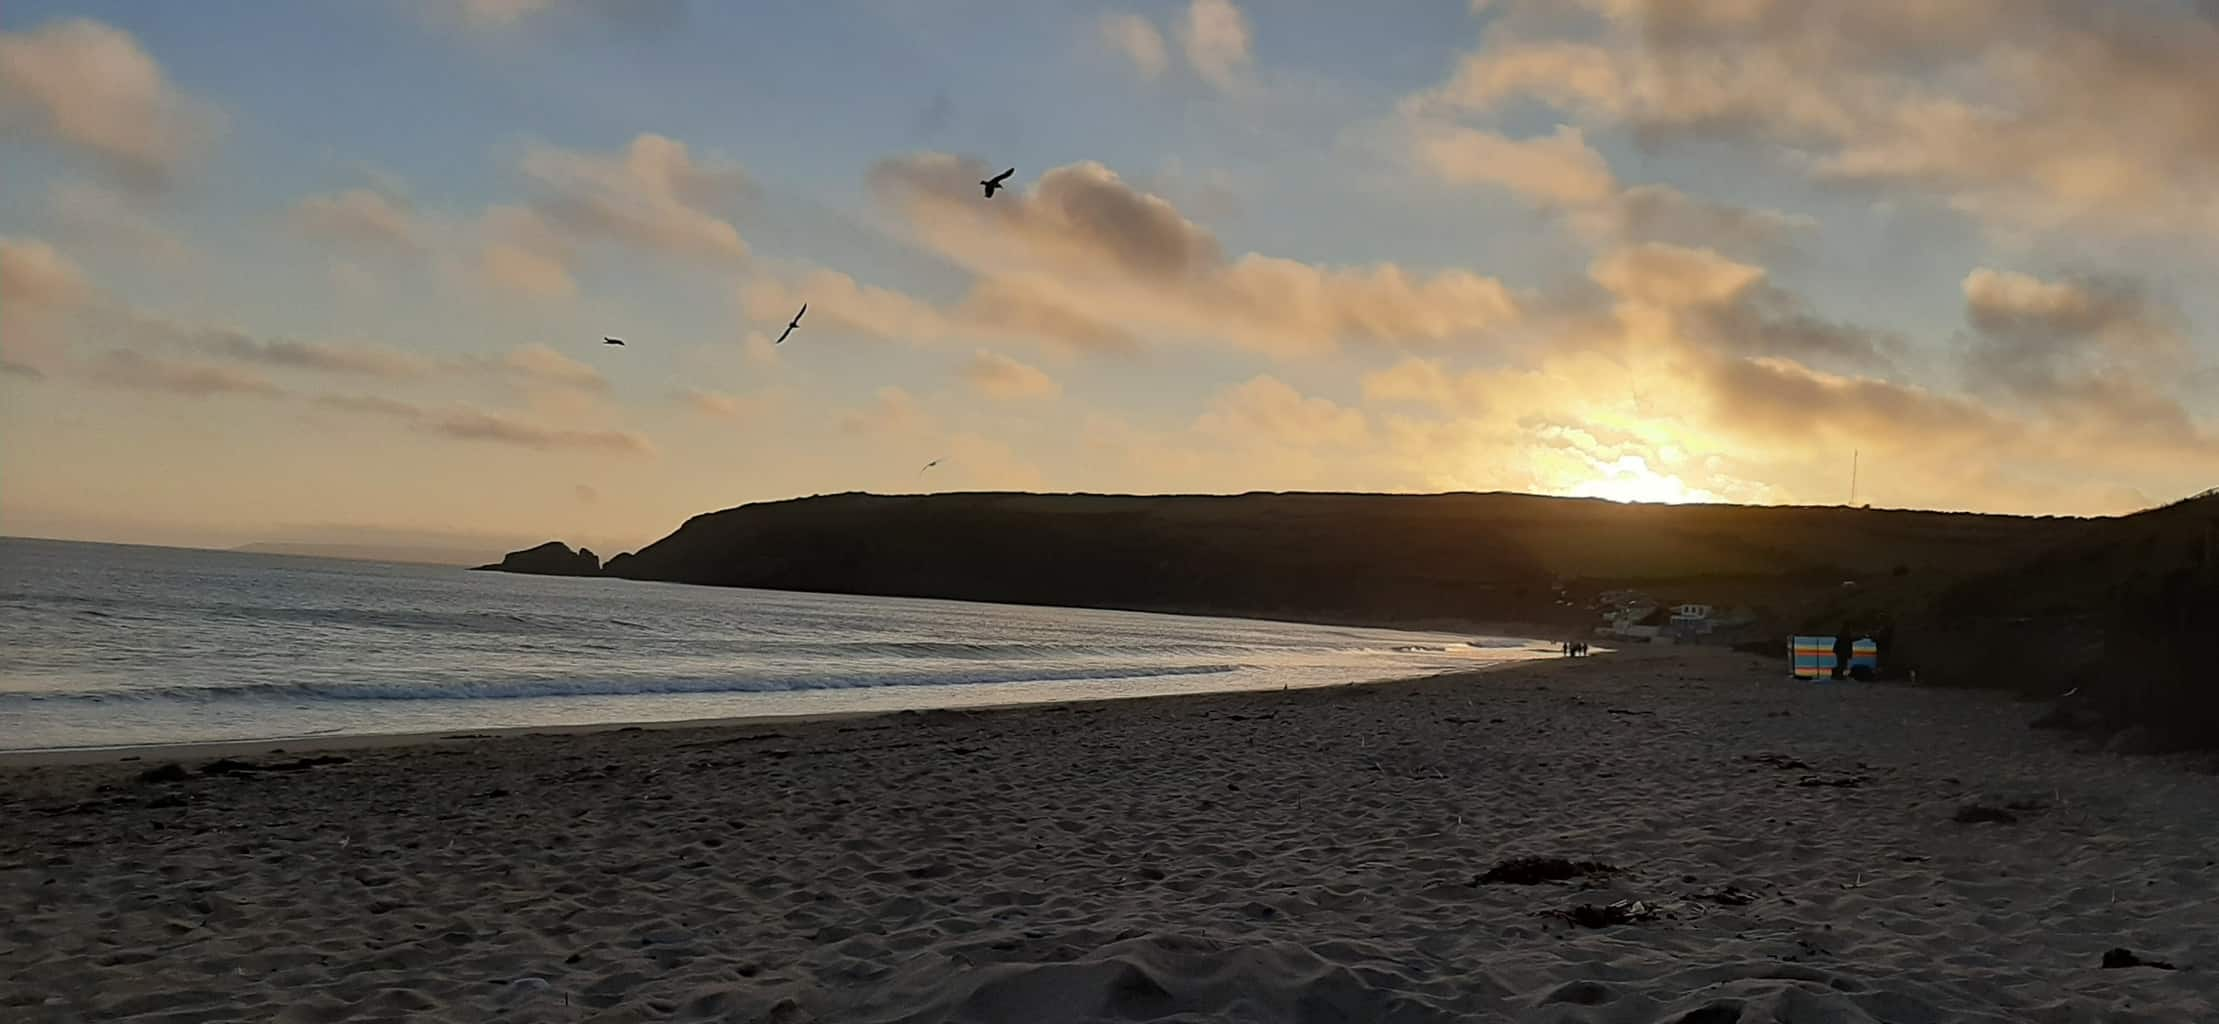 Cornish sunset - Connecting with nature